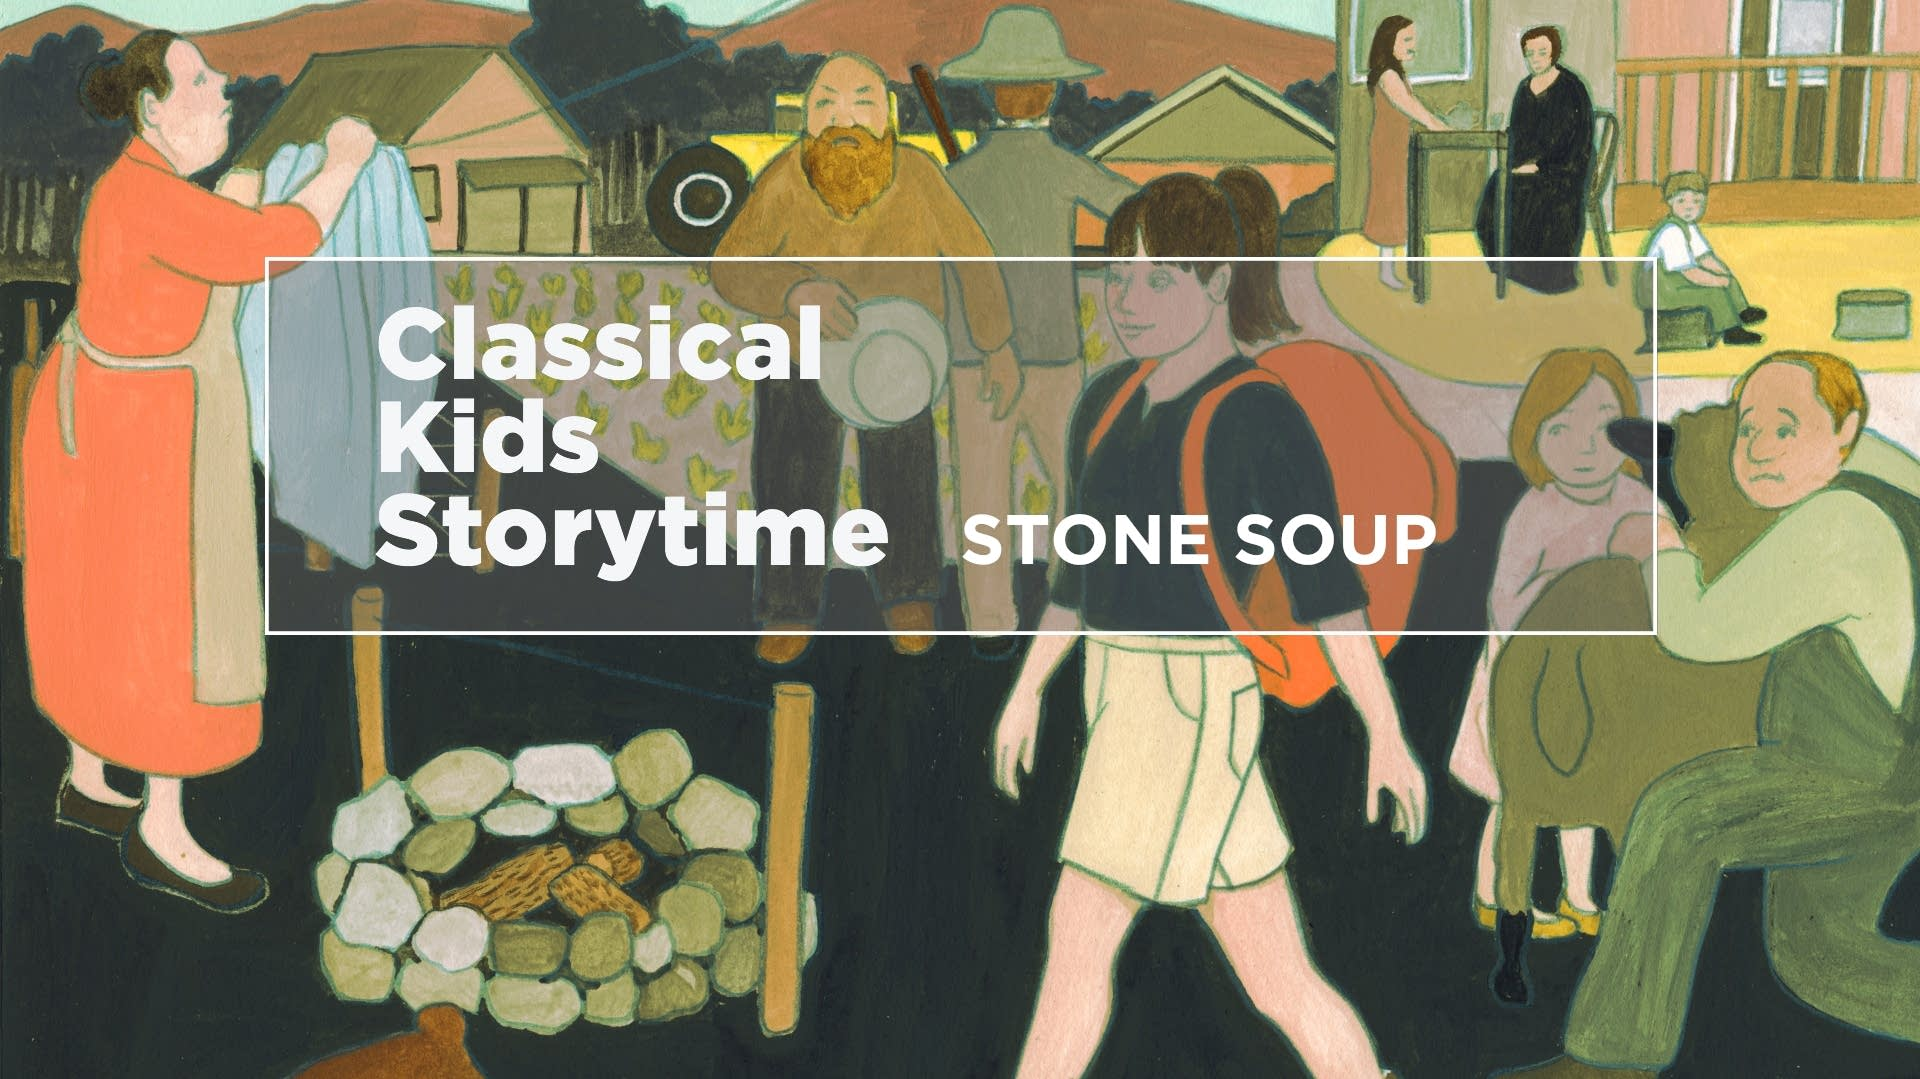 Classical Kids Storytime Stone Soup